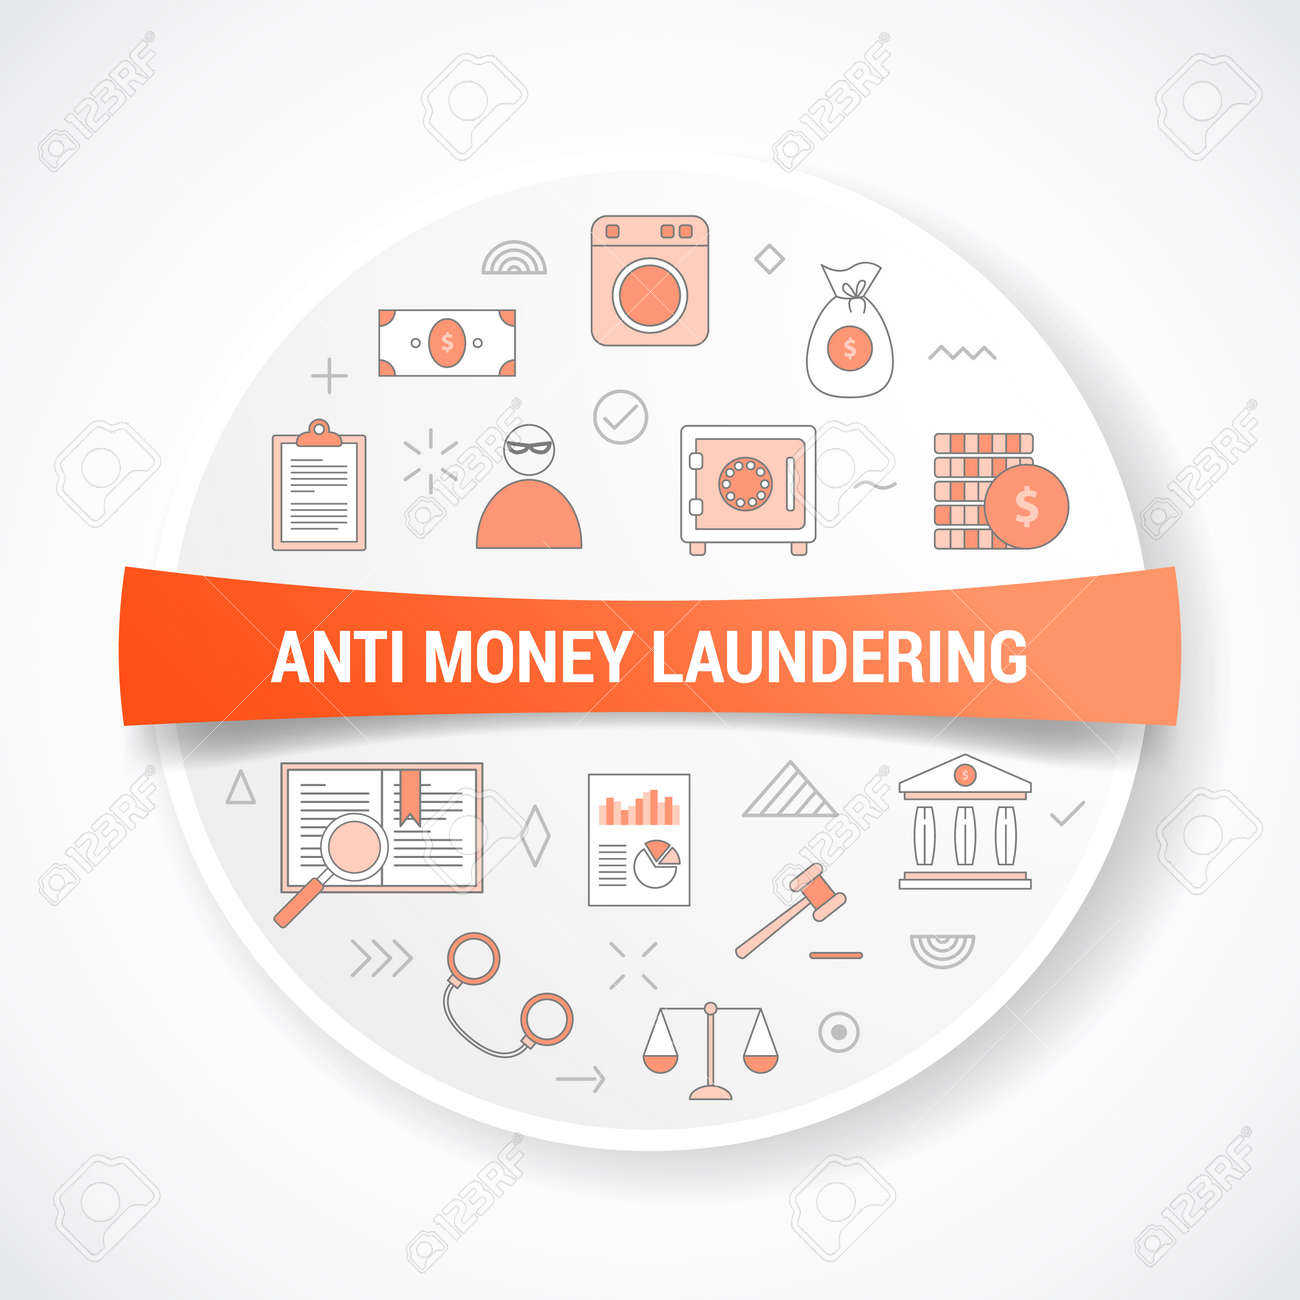 aml anti money laundering concept with icon concept with round or circle shape vector illustration - 165791195